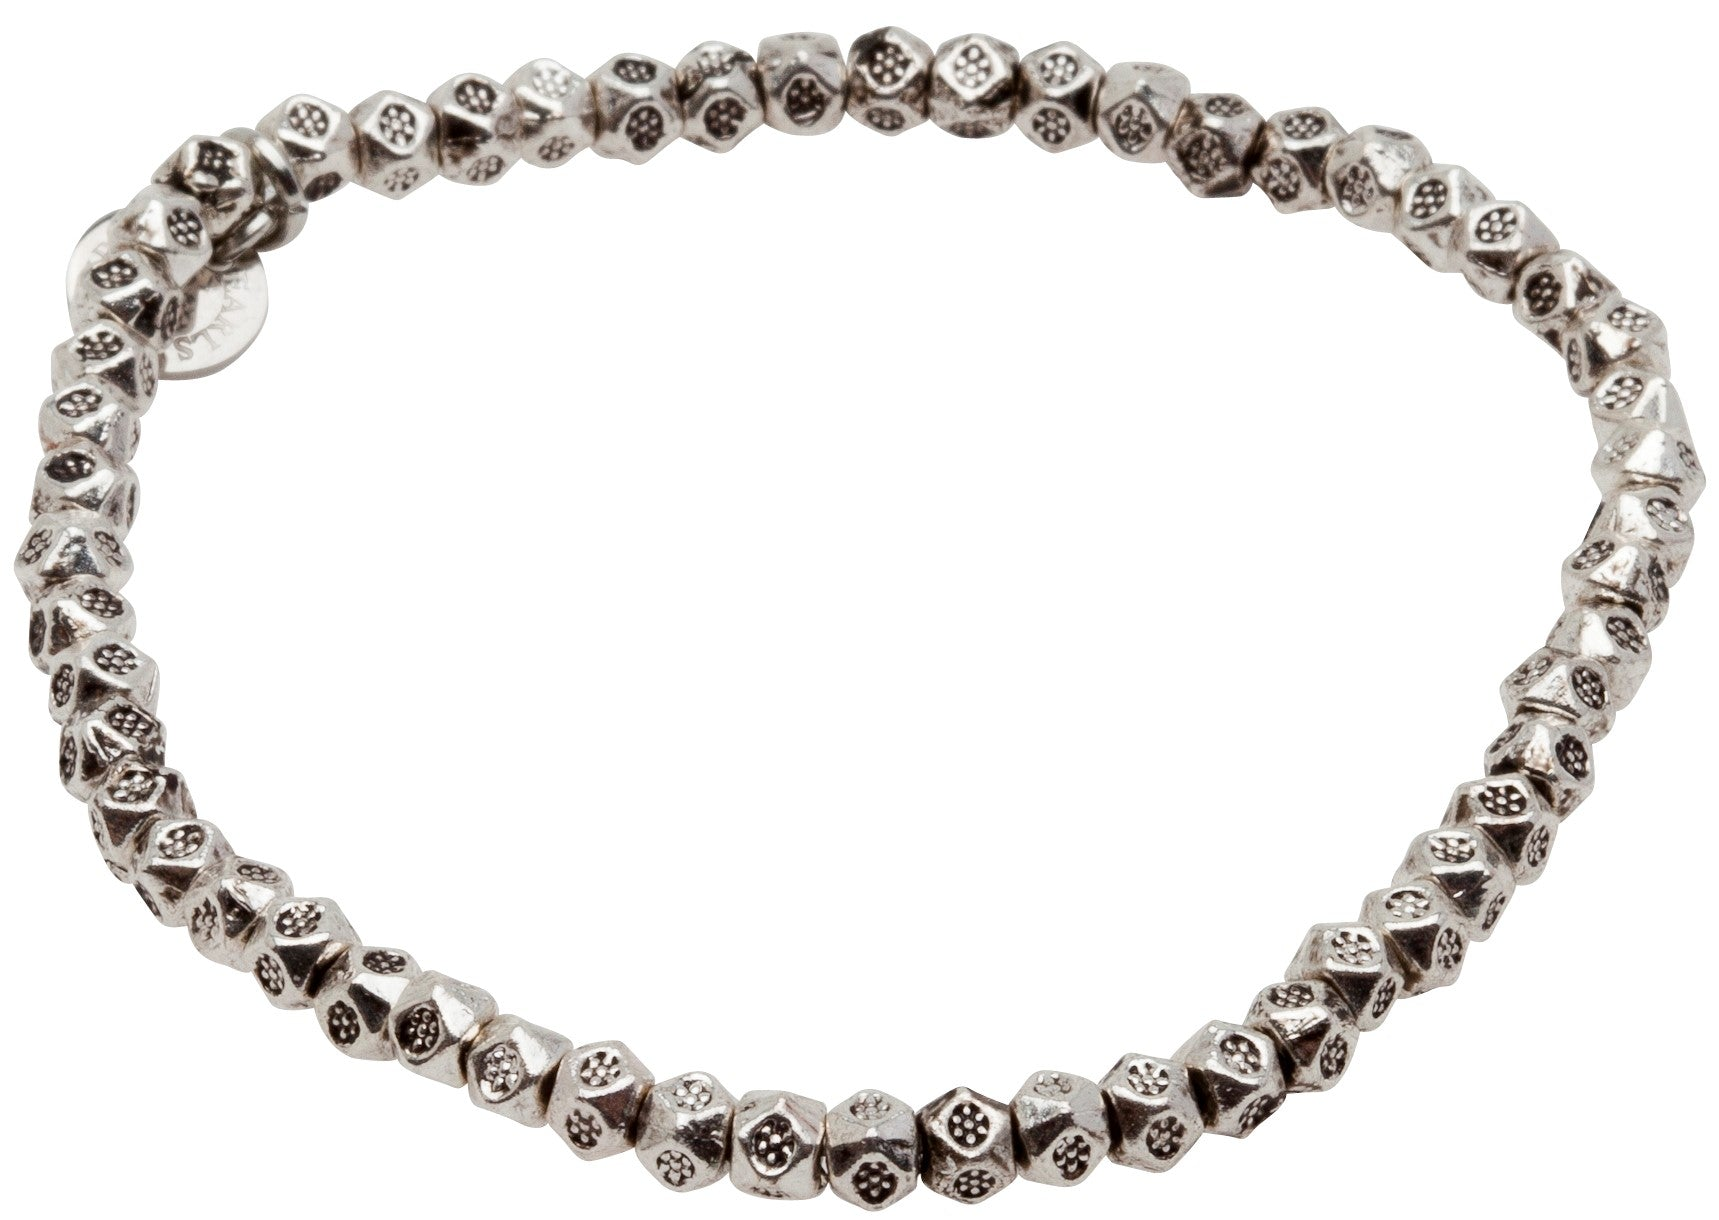 Daisy Bracelet - available in Gold, Silver or RoseGold